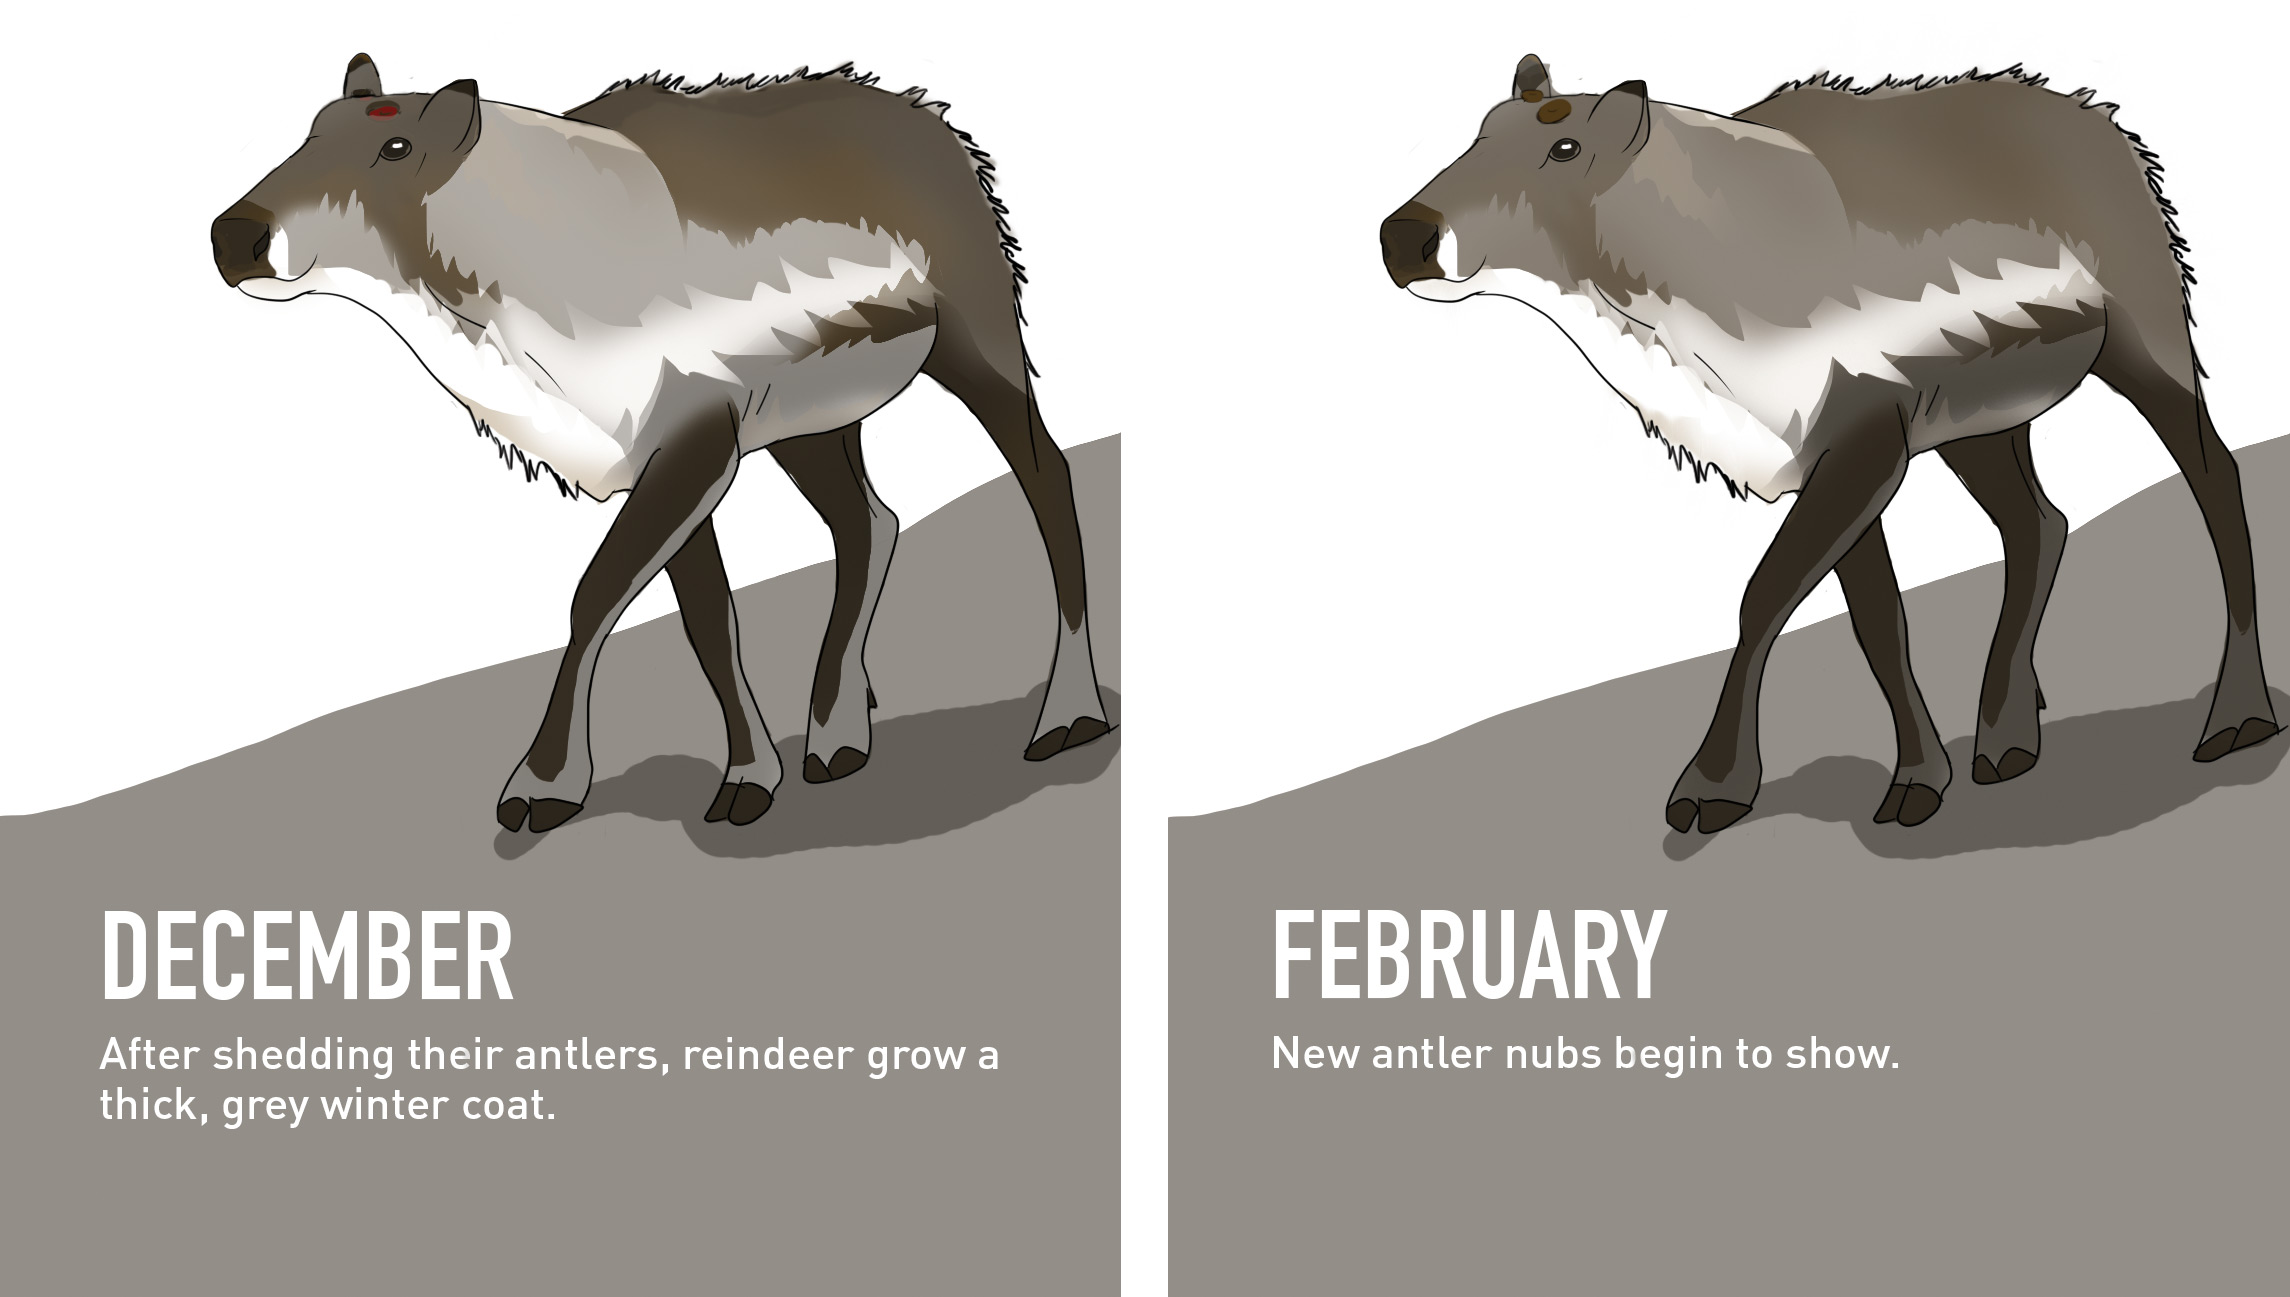 Male Reindeer's transformation from December to February.